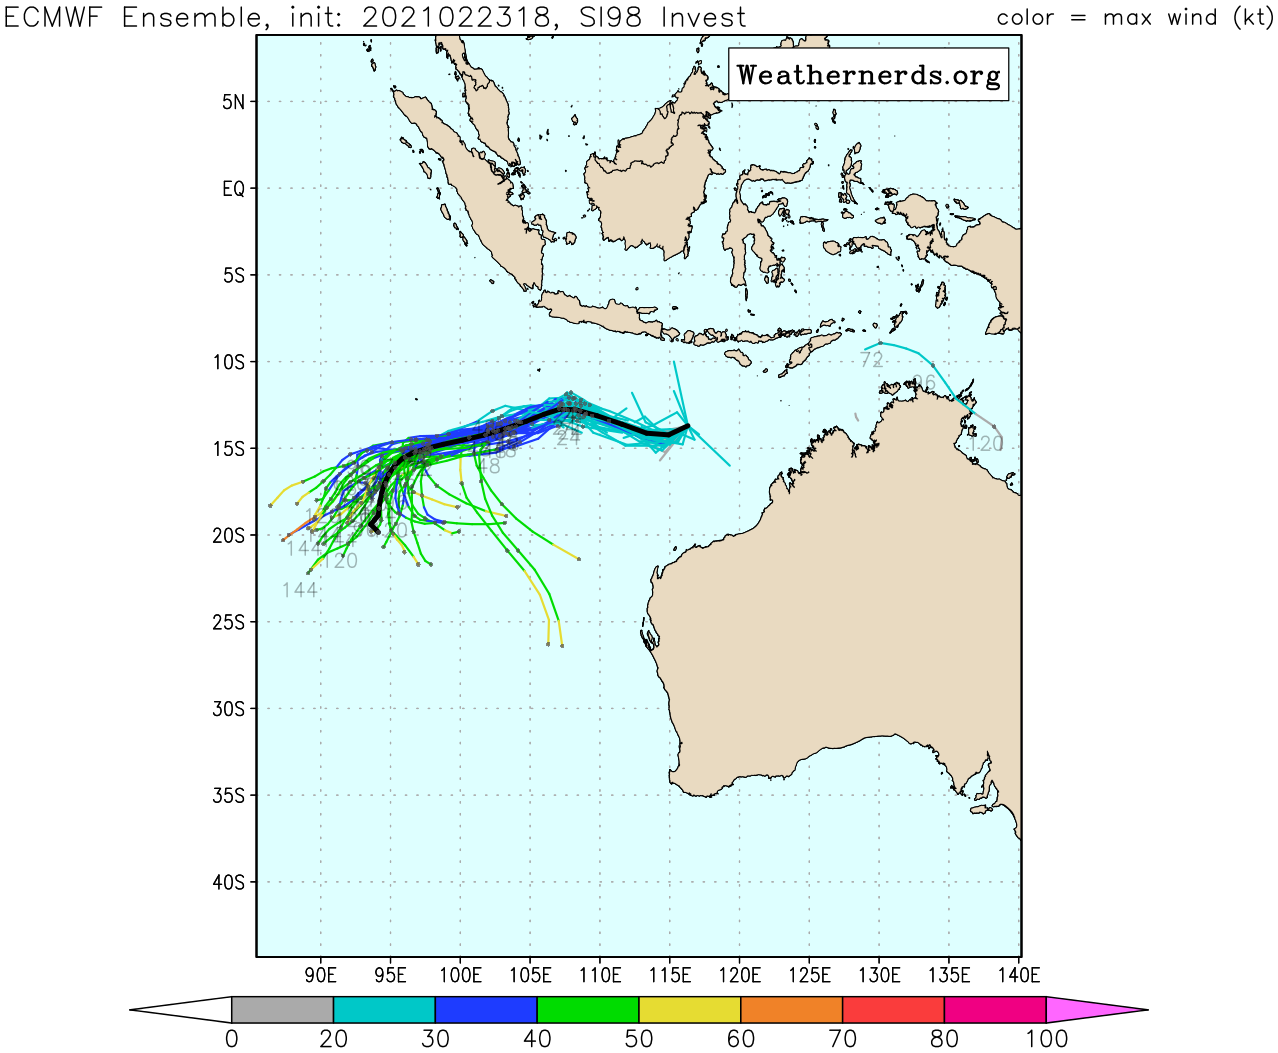 INVEST 98S. RADIAL OUTFLOW, LOW VERTICAL  WIND SHEAR (10-15KTS) AND WARM SEA SURFACE TEMPERATURES (29-30C)  CREATE FAVORABLE CONDITIONS FOR FURTHER DEVELOPMENT. GLOBAL MODELS  INDICATE INVEST 98S WILL TRACK WESTWARD AND INTENSIFY QUICKLY OVER  THE NEXT 36-48 HOURS.